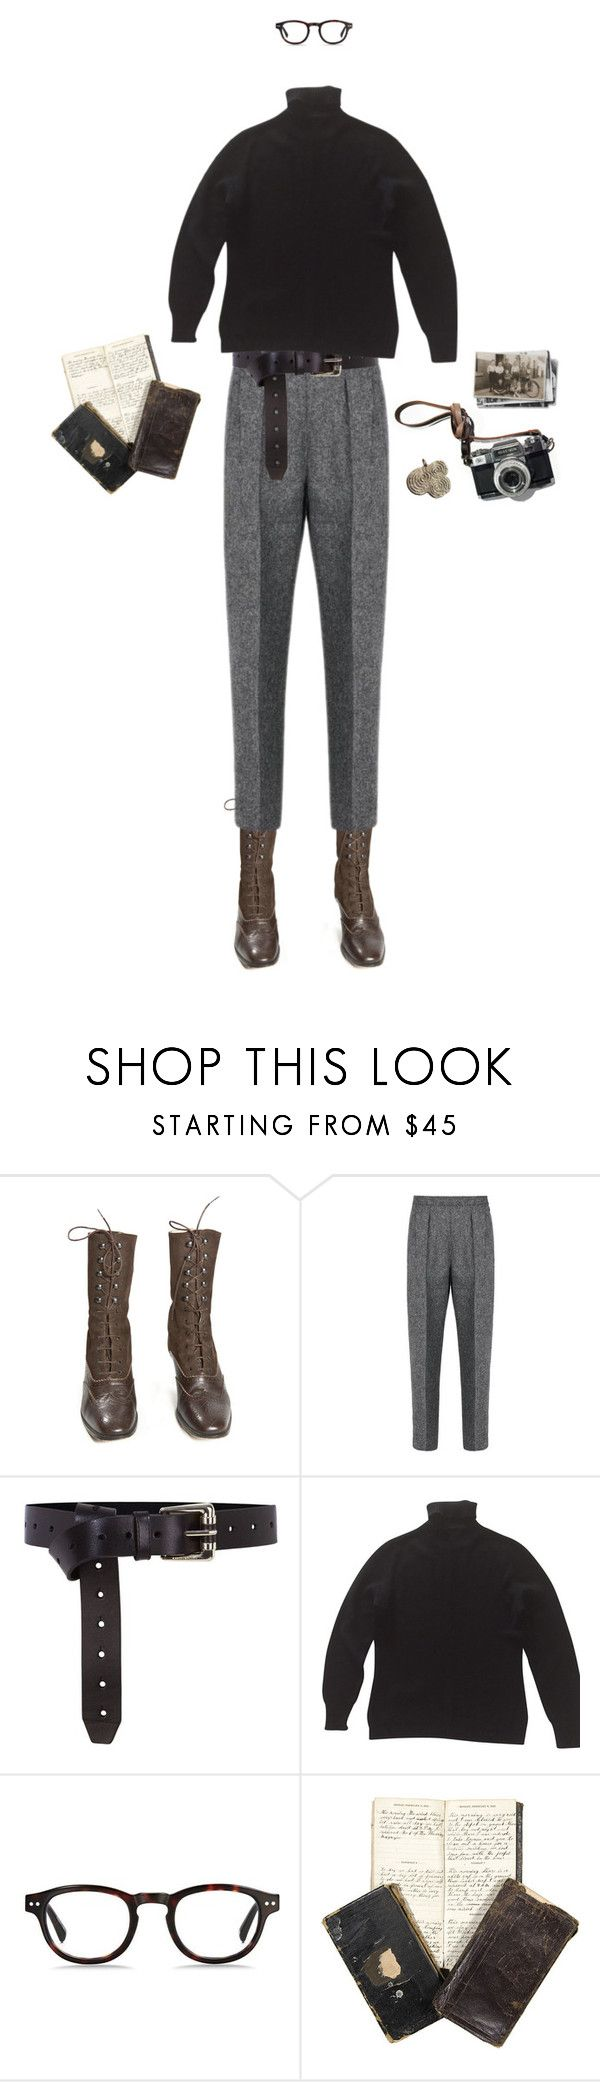 """""""*"""" by thehighlands ❤ liked on Polyvore featuring Maison Margiela, Karen Millen, Hermès, Bailey Nelson, men's fashion and menswear"""